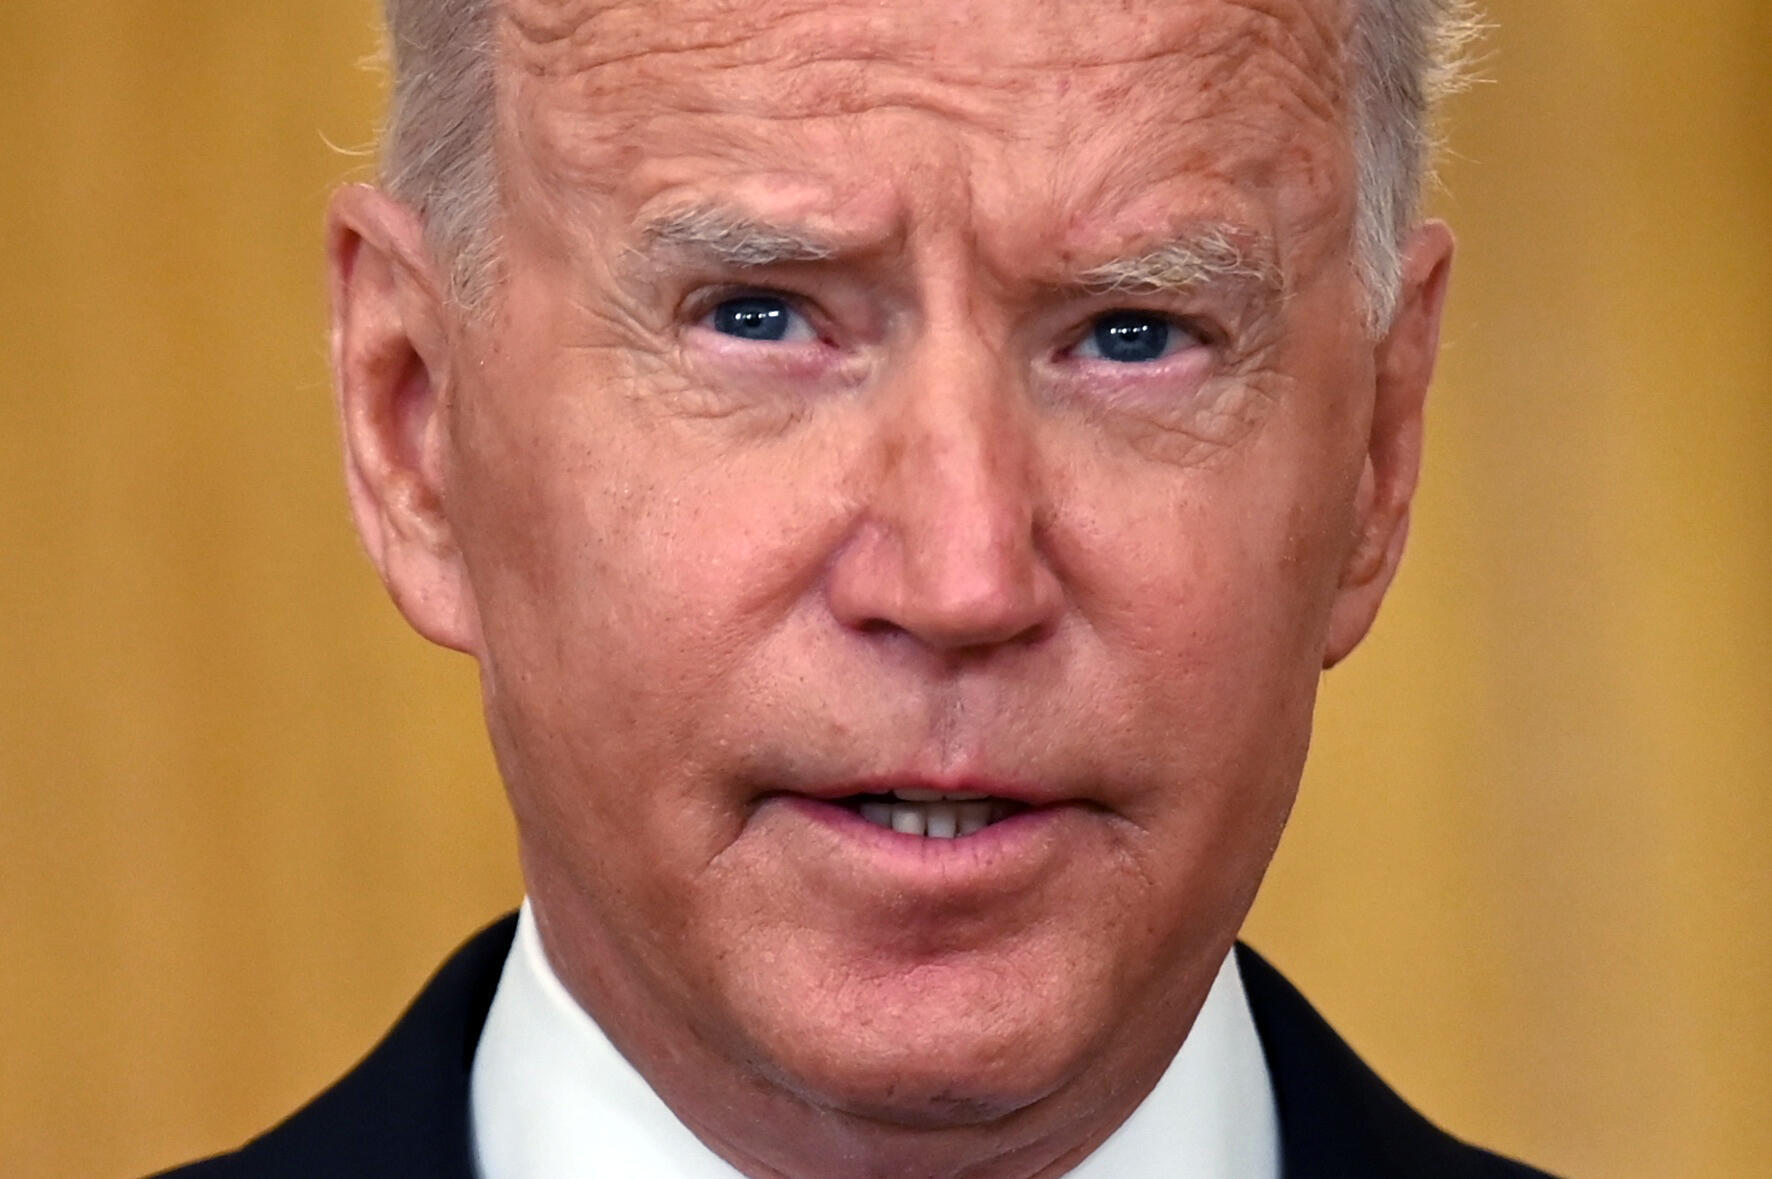 """US President Joe Biden said he stands in support of educators who seek to """"do the right thing"""" by mandating the wearing of masks in schools, even as some Republican governors refuse to impose such rules"""